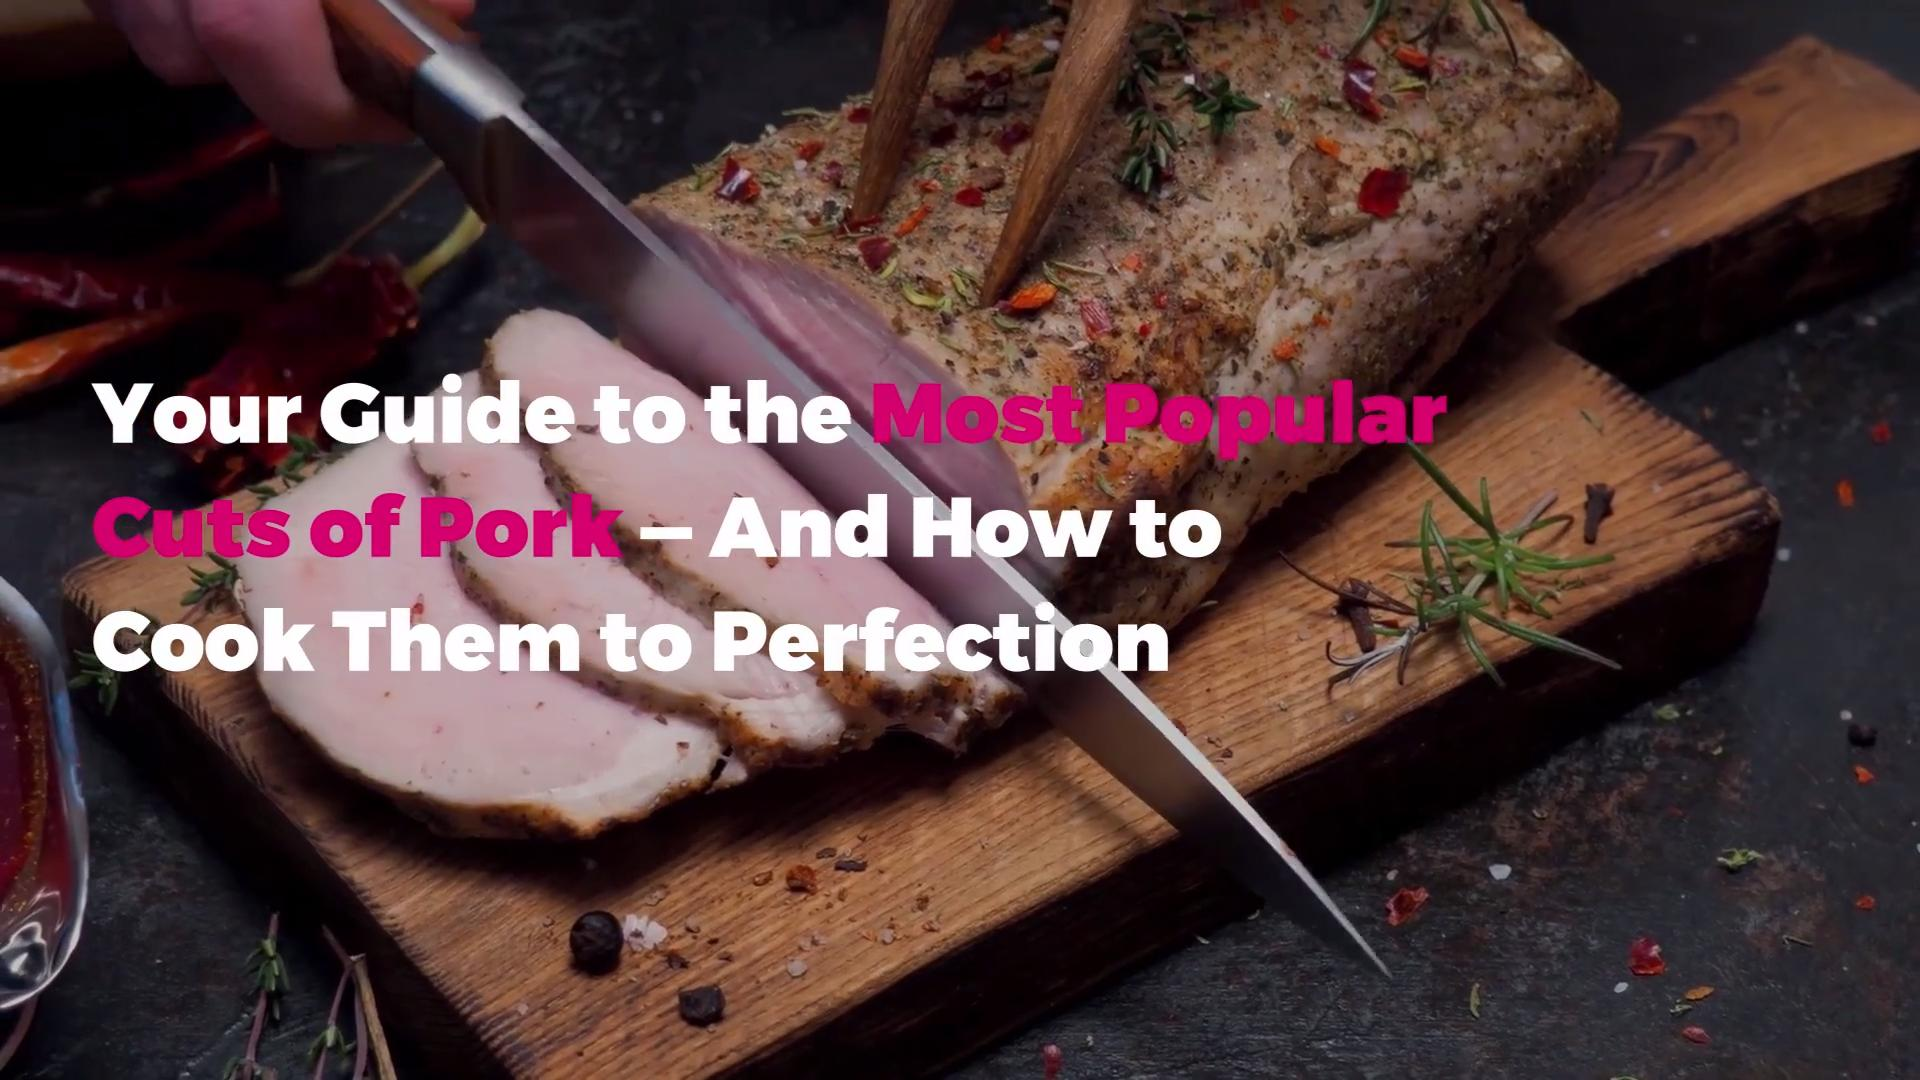 Your Guide to the Most Popular Cuts of Pork—And How to Cook Them to